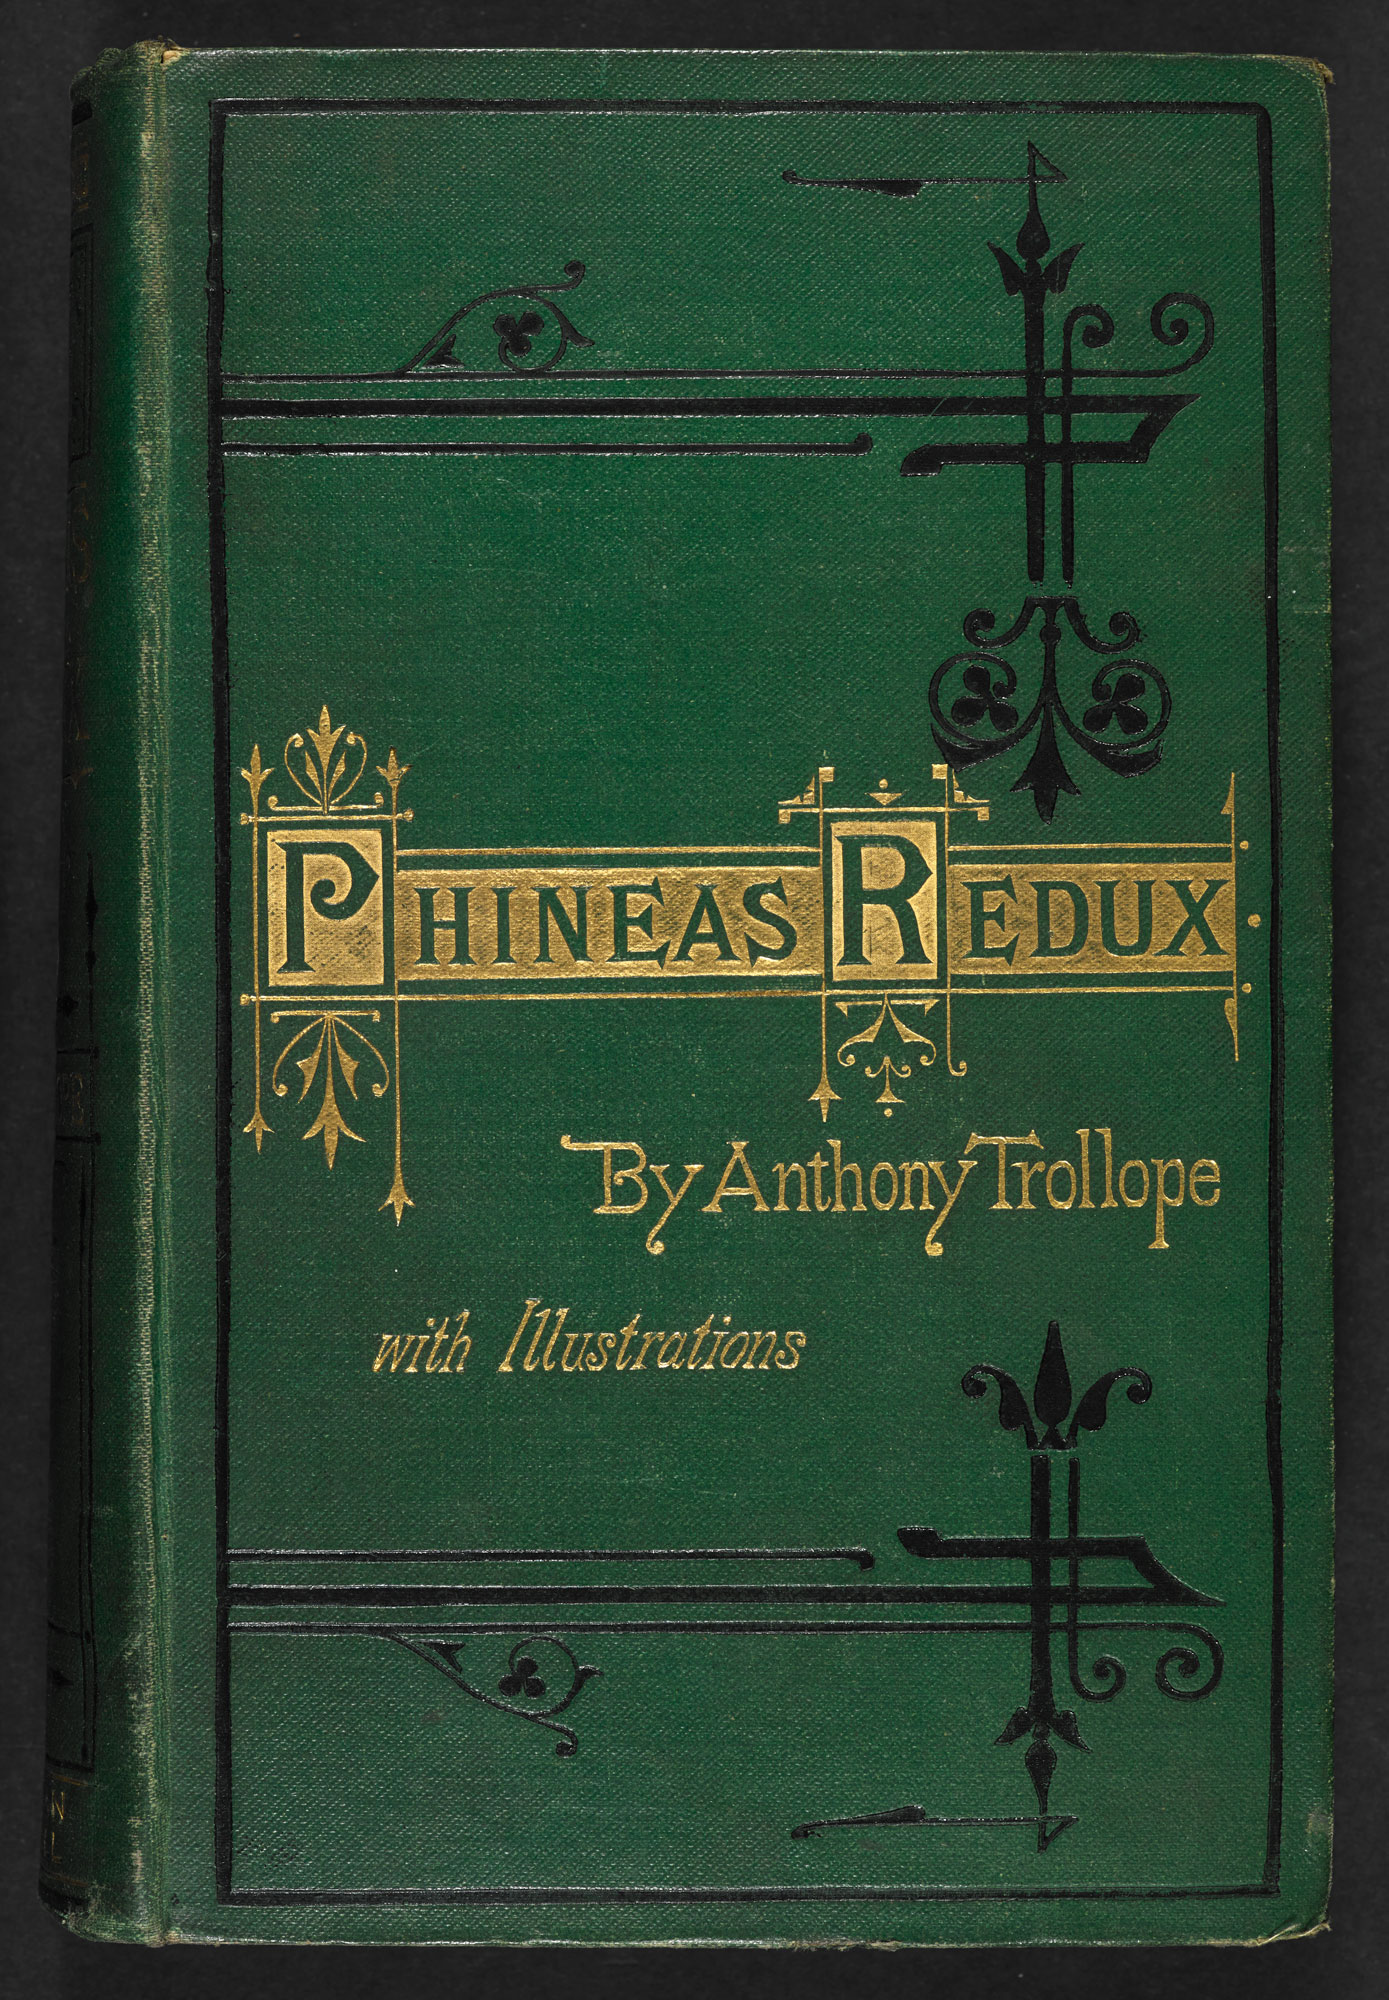 Phineas Redux by Anthony Trollope [page: front cover]